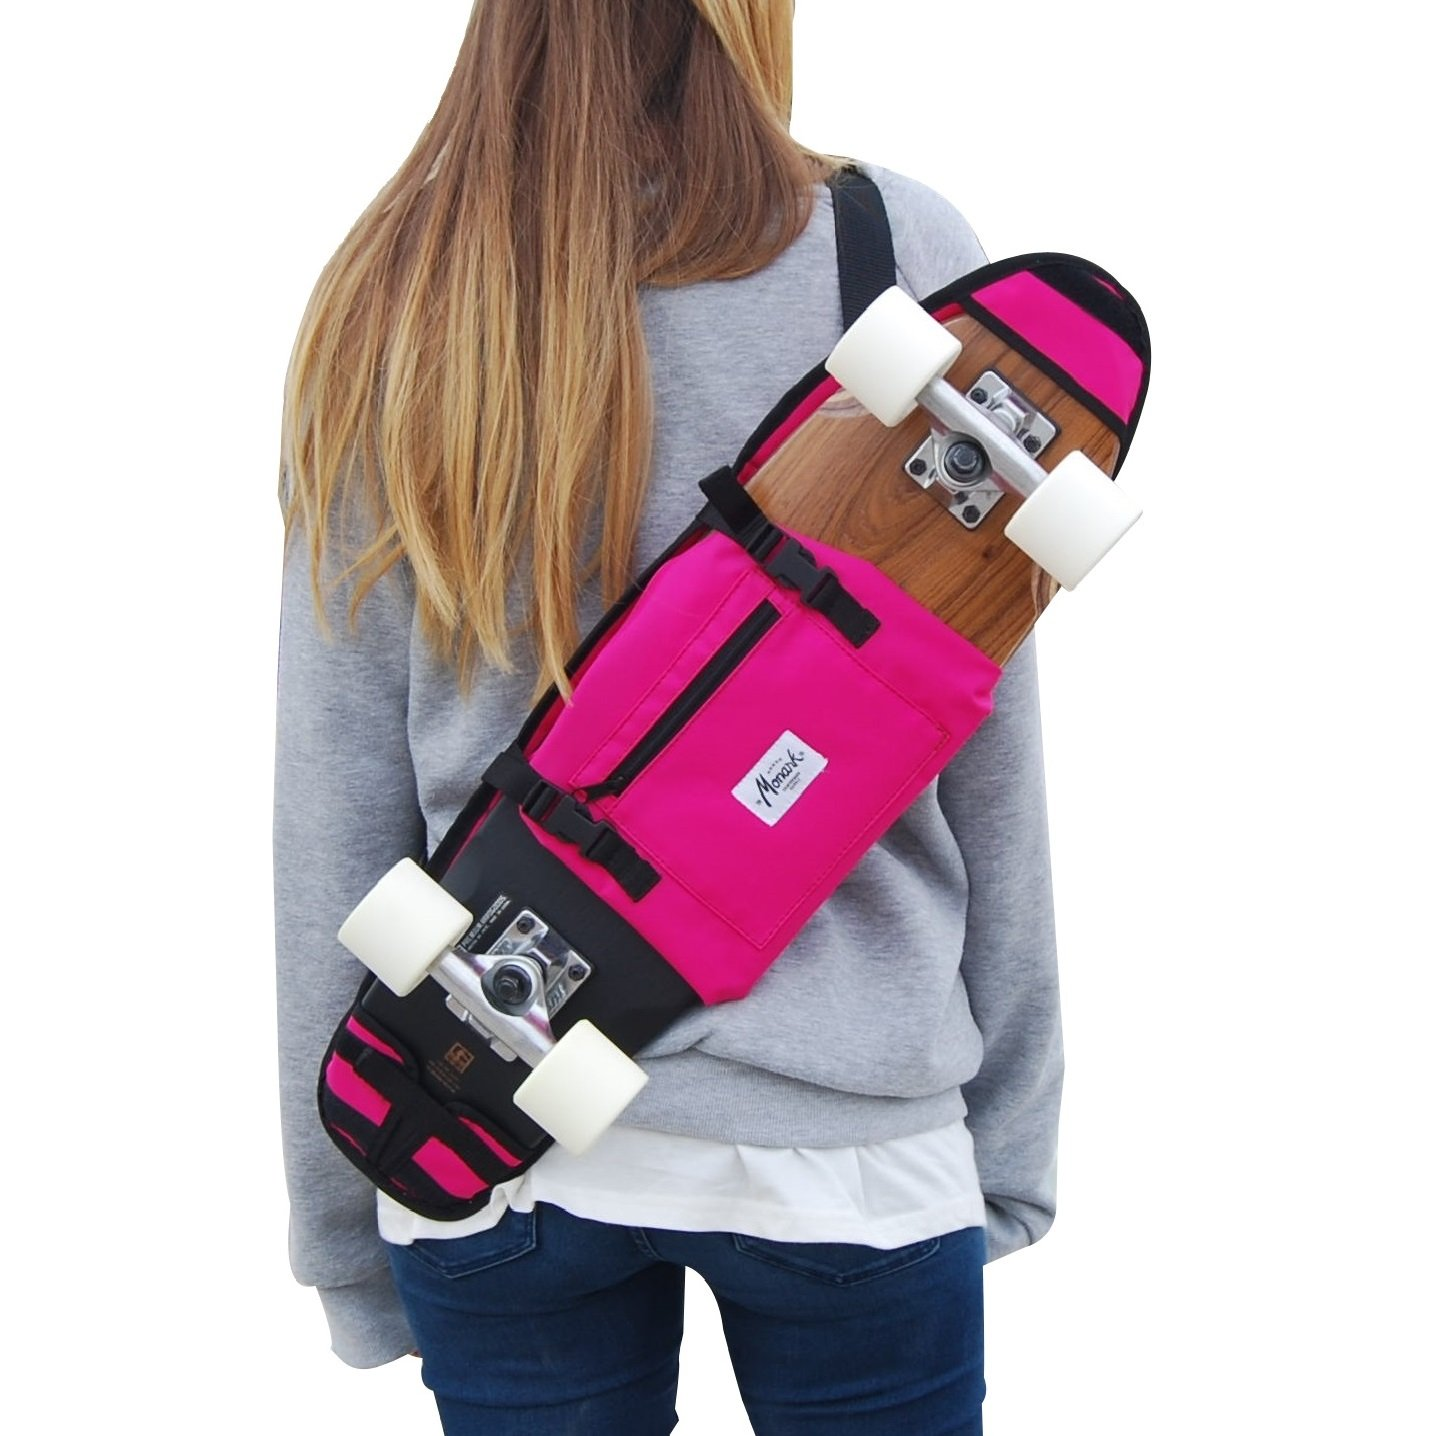 "BANDOLERA PORTA SKATEBOARD 26 Y 27"" ROSA. MONARK SUPPLY IDEA DE REGALO skate-home"